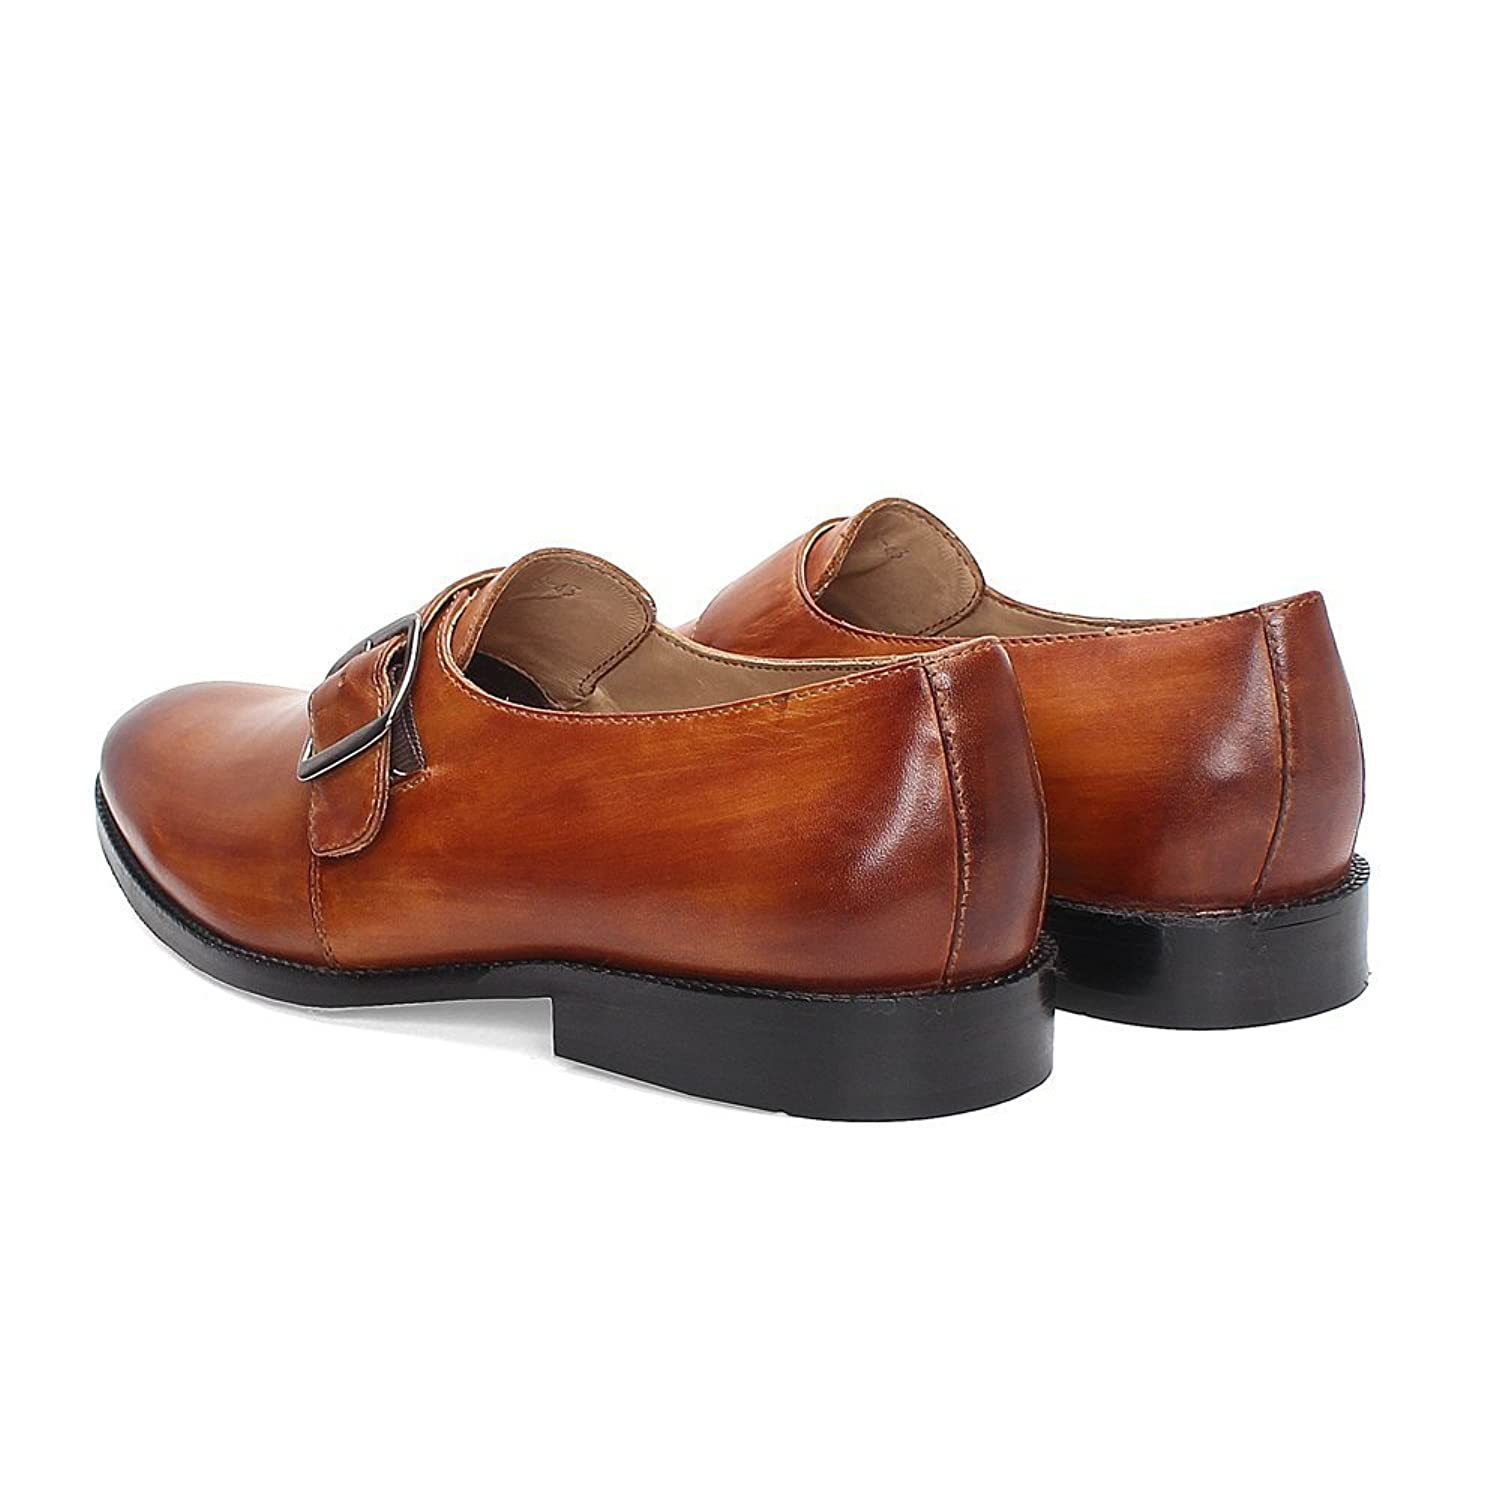 BRUNE Tan Color 100% Genuine Leather Single Monk Strap Shoes For Men  size-10: Buy Online at Low Prices in India - Amazon.in